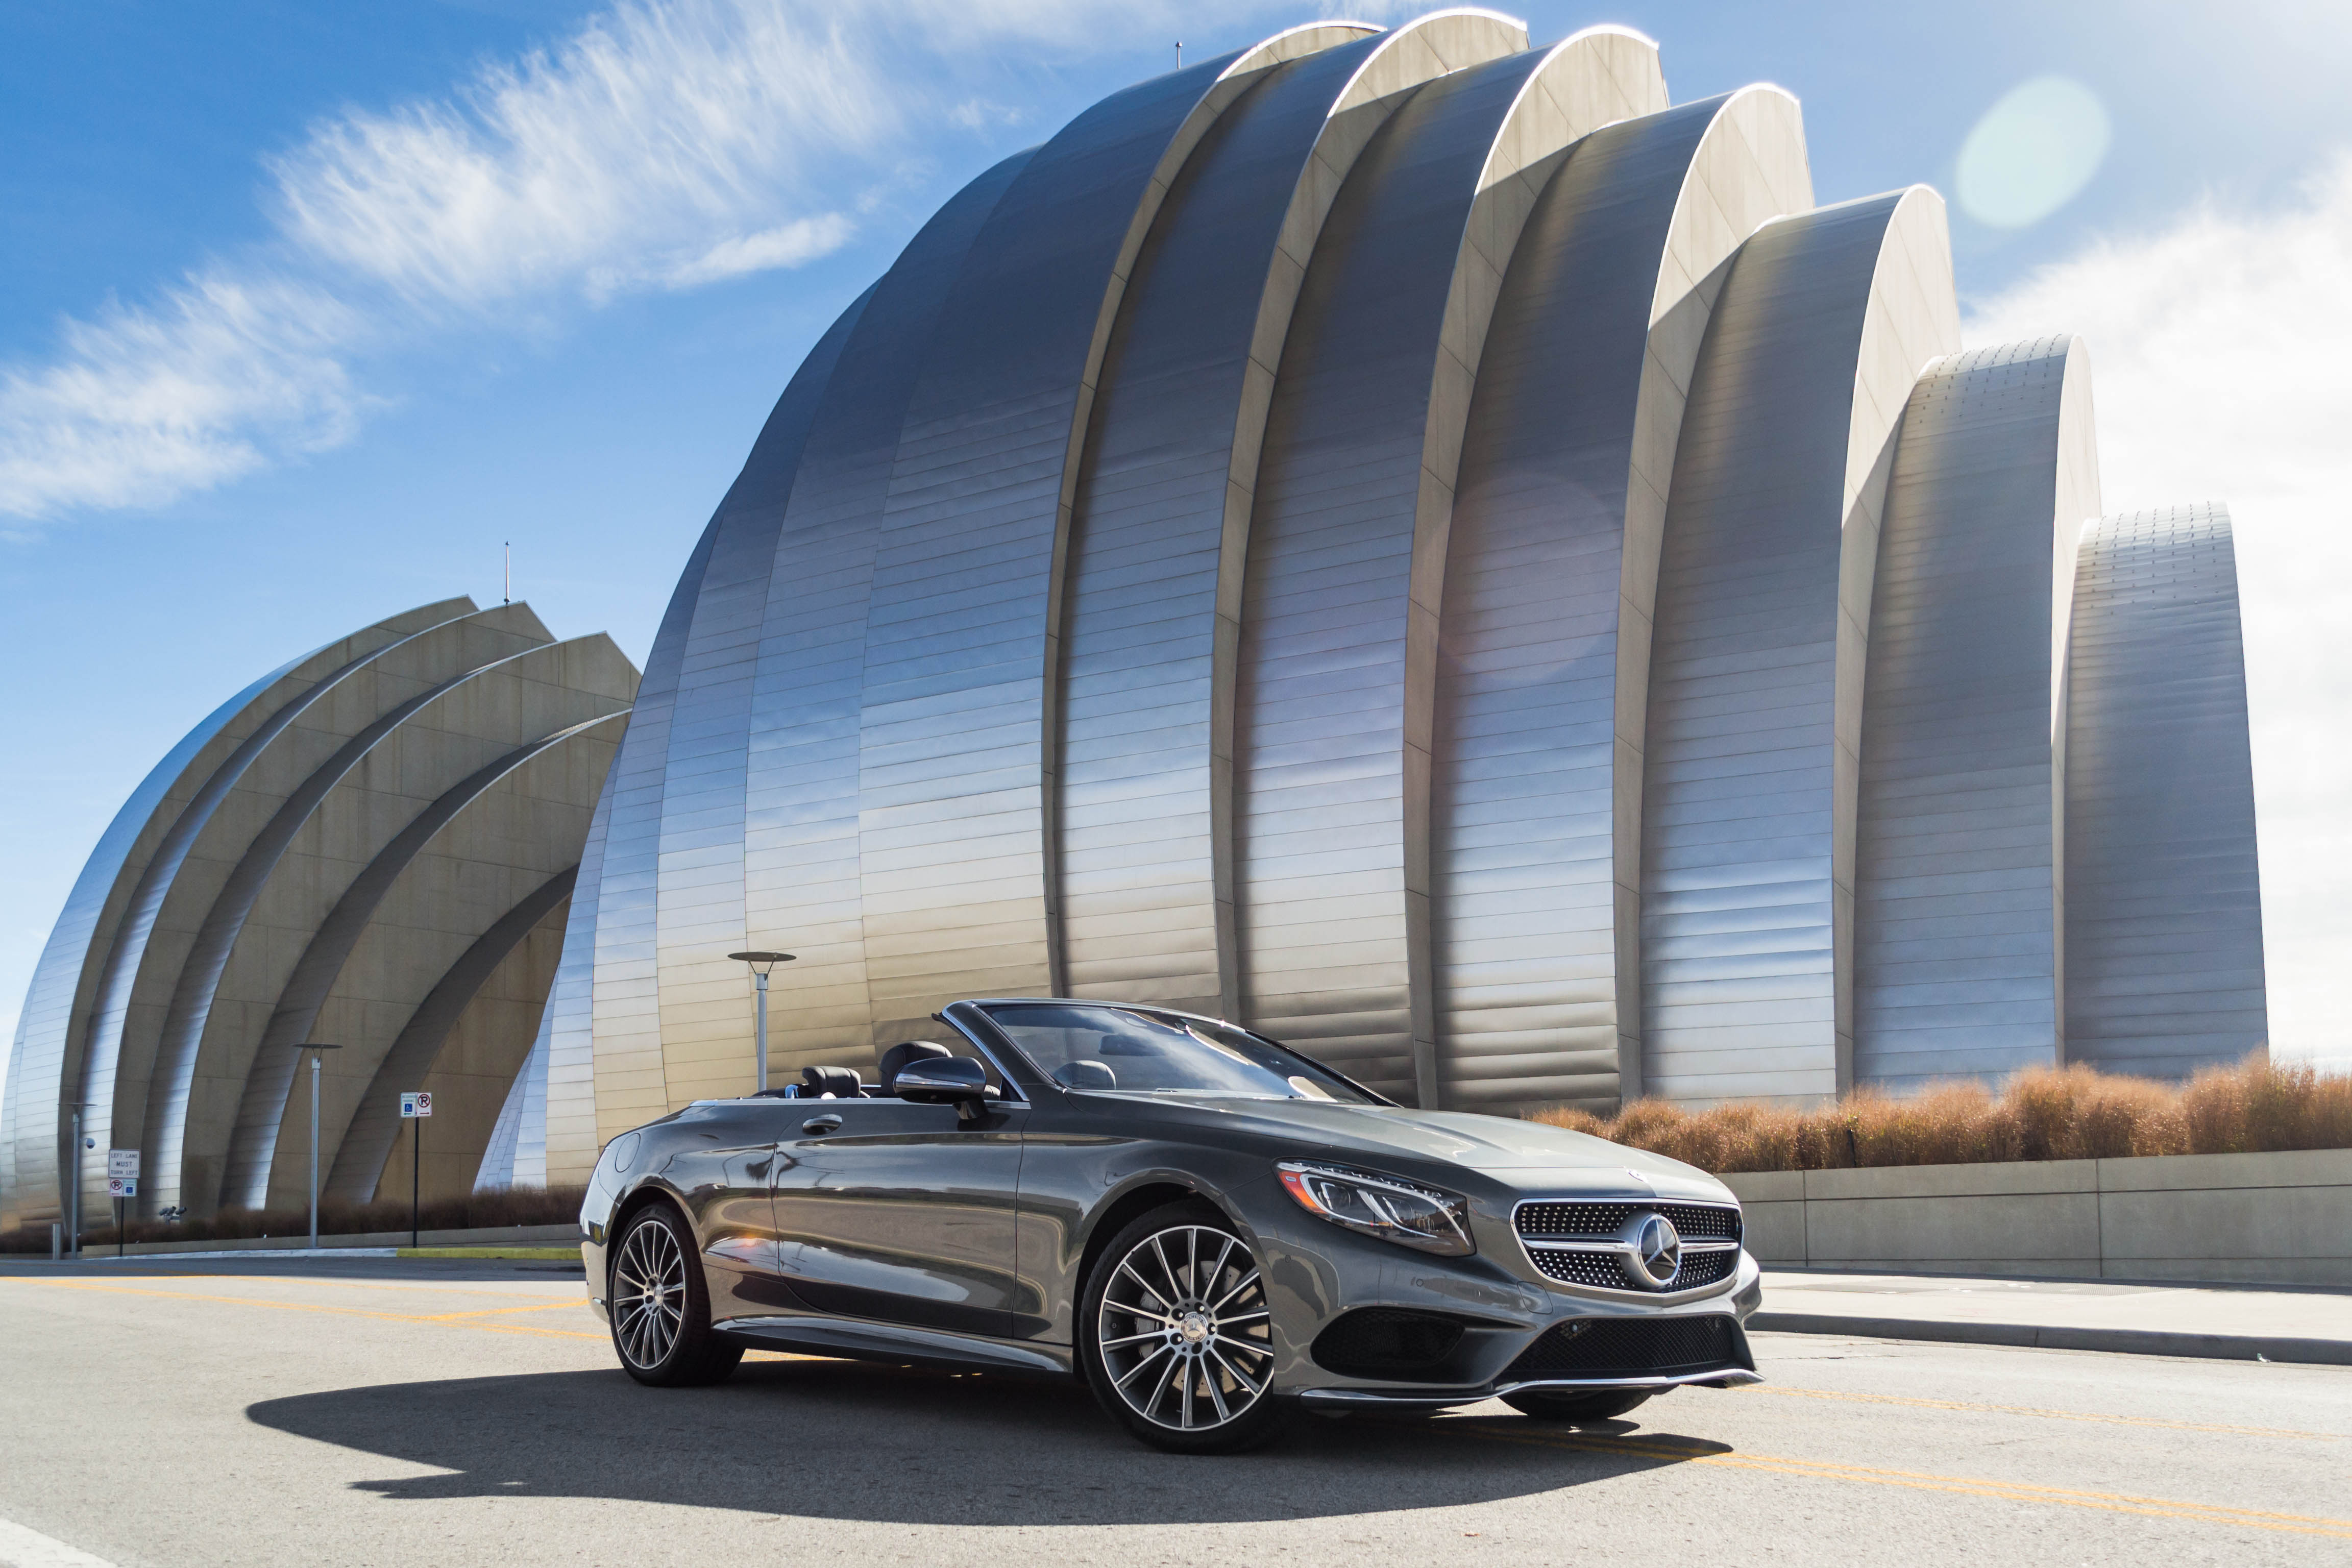 Beautiful Mercedes Benz Of Kansas City Is Looking For The Perfect Person To Join Our  Team As An Internet Sales Consultant. This Person Must Come With Great  Enthusiasm ...